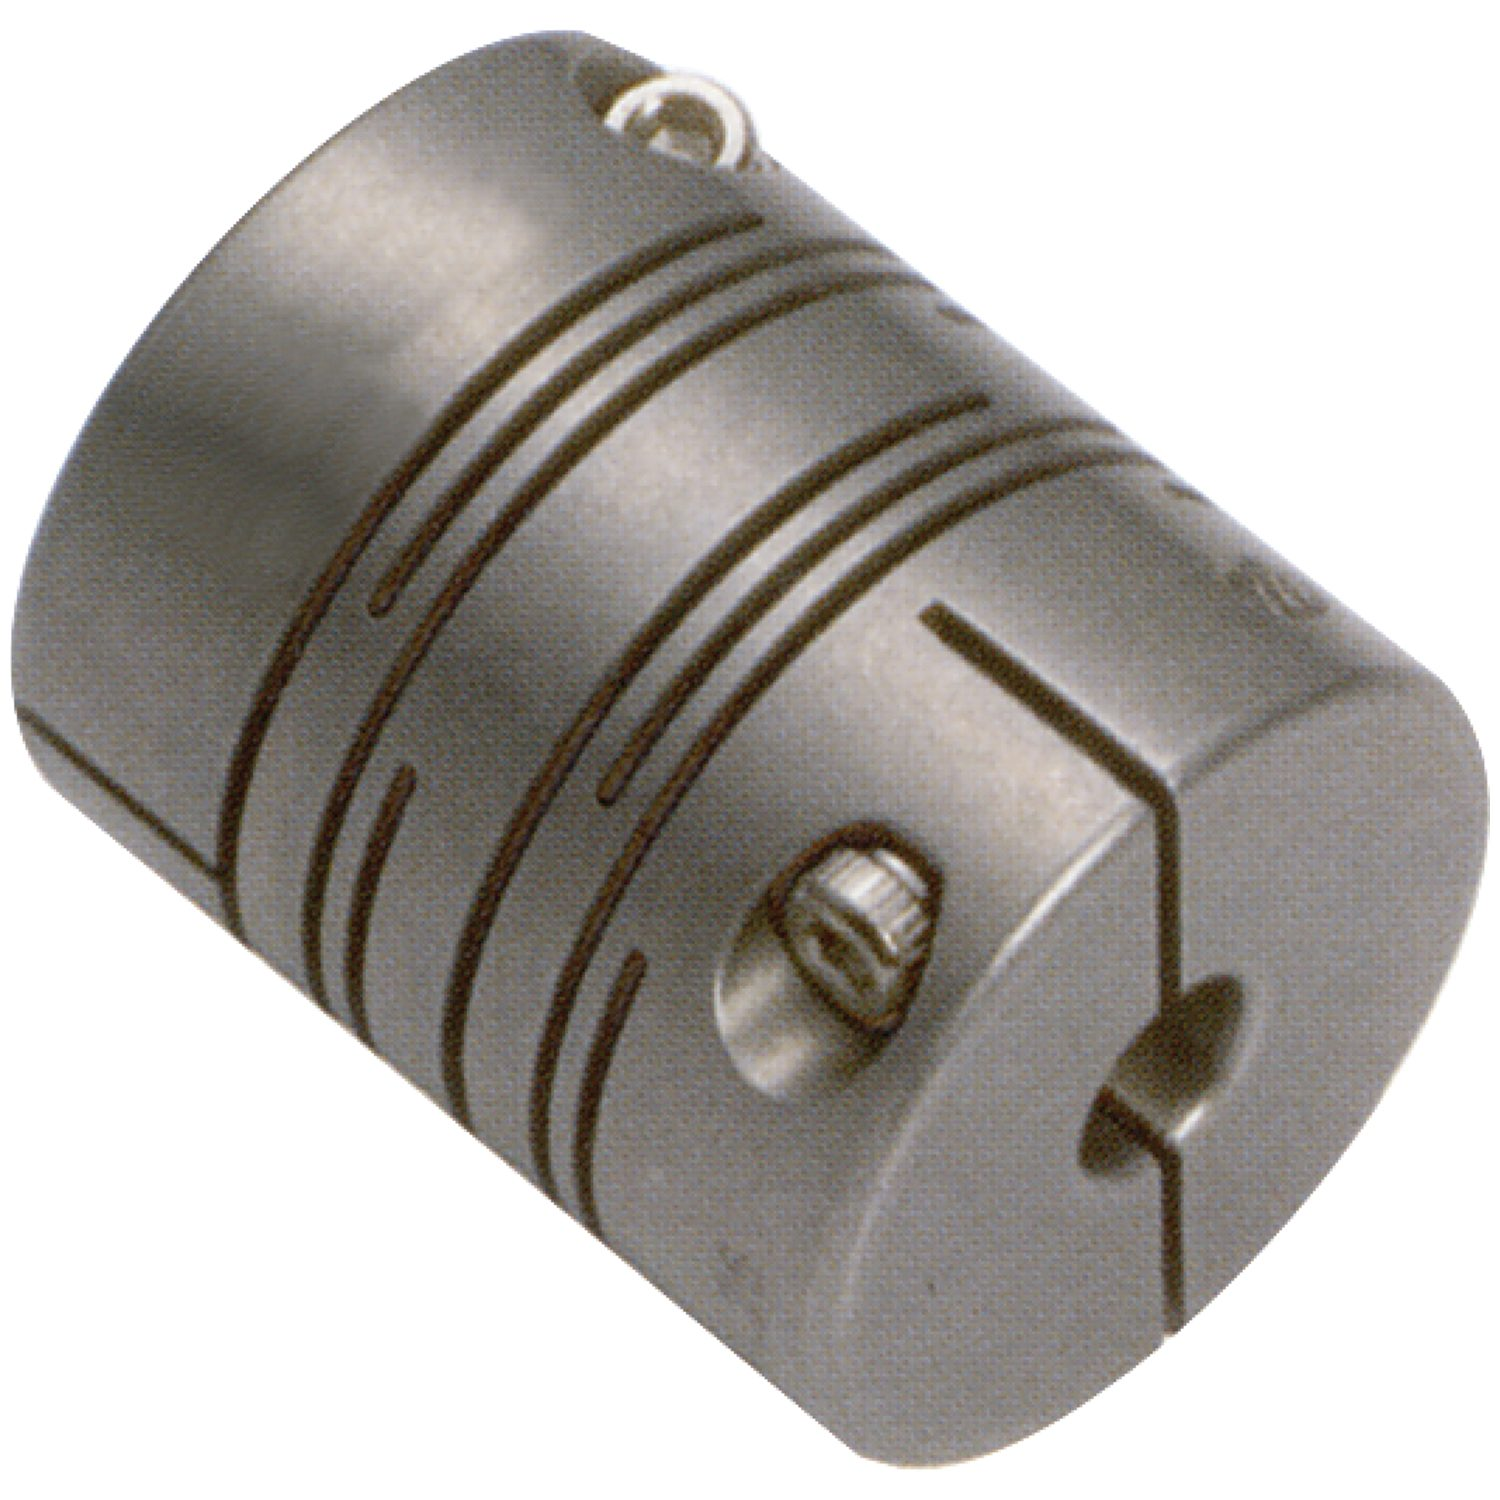 R3004.2 - Spiral Beam Coupling - stainless steel